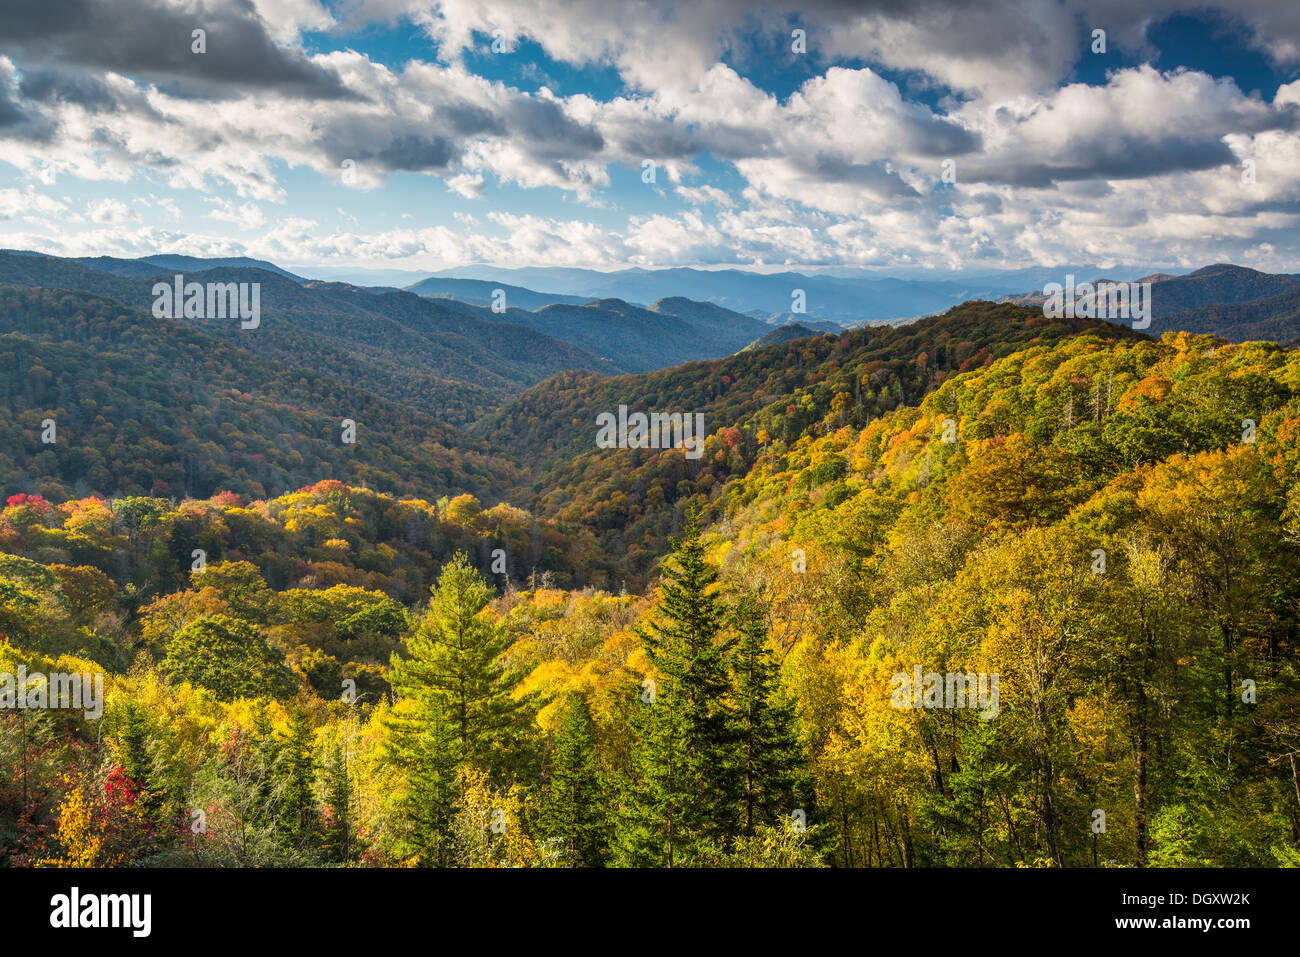 Smoky Mountains Landschaft am Newfound Gap im Herbst. Stockbild